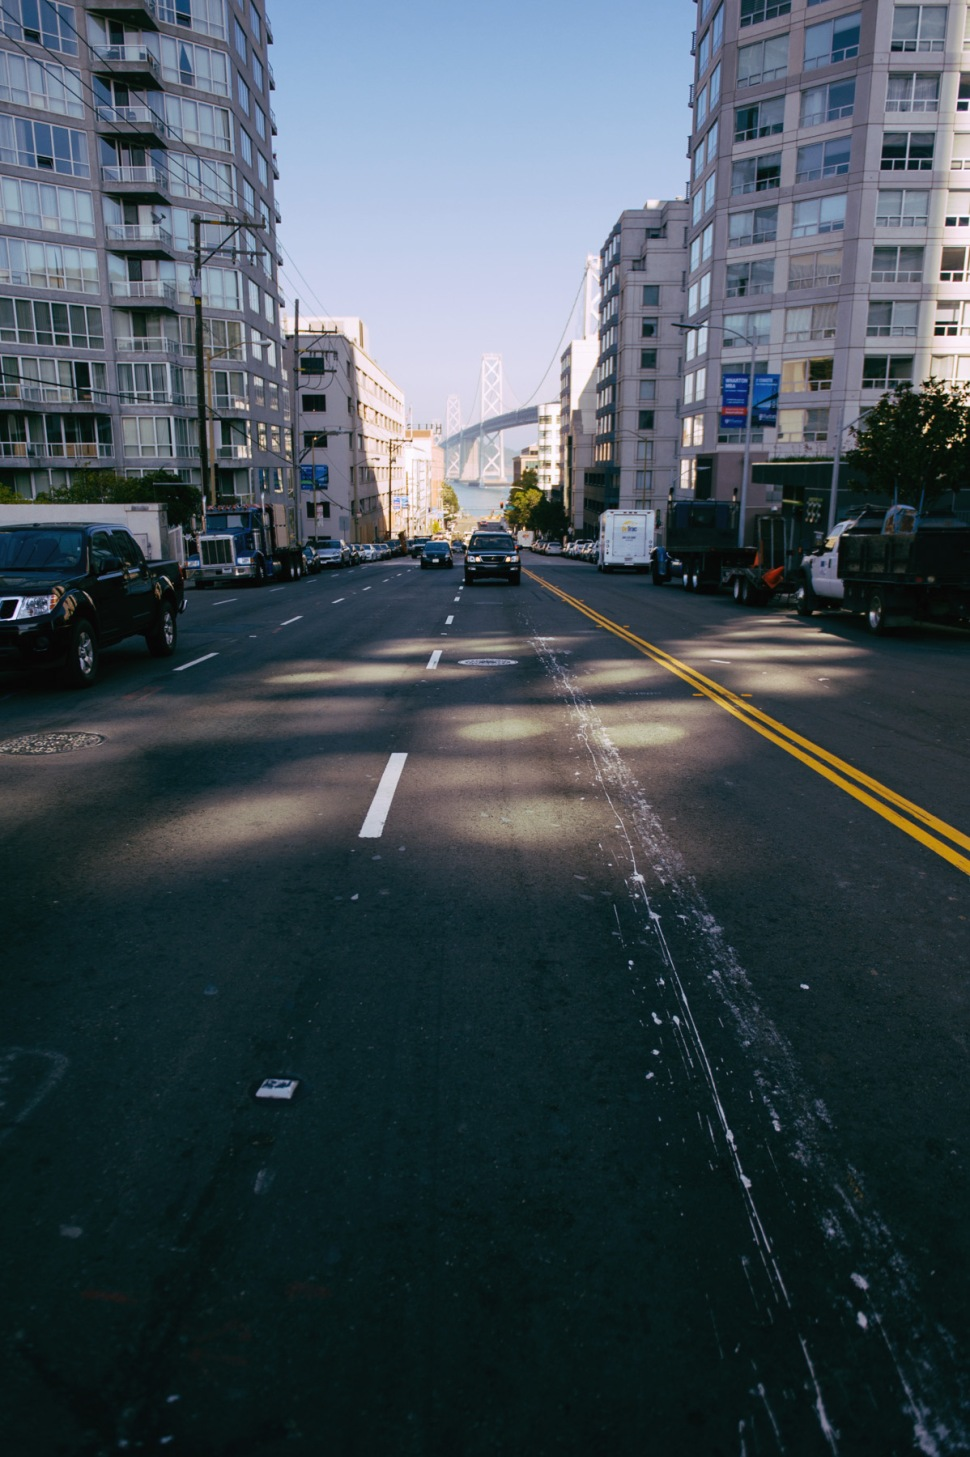 san-fransisco-chapter-one-october-22-201310-of-14